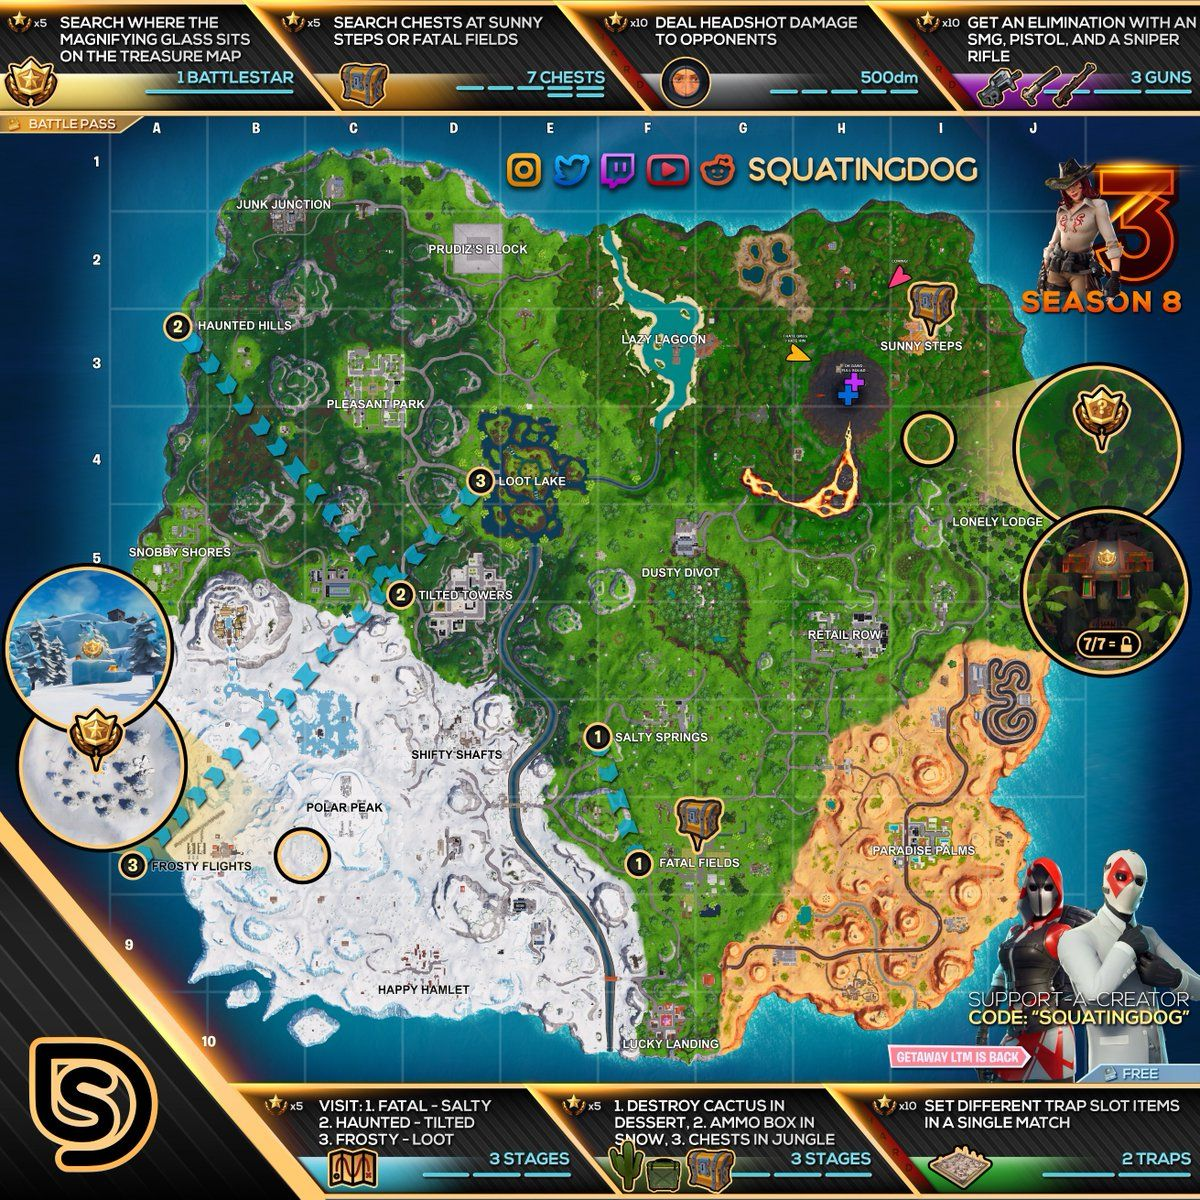 Complete Fortnite Cheat Sheet with all Season 8 Week 3